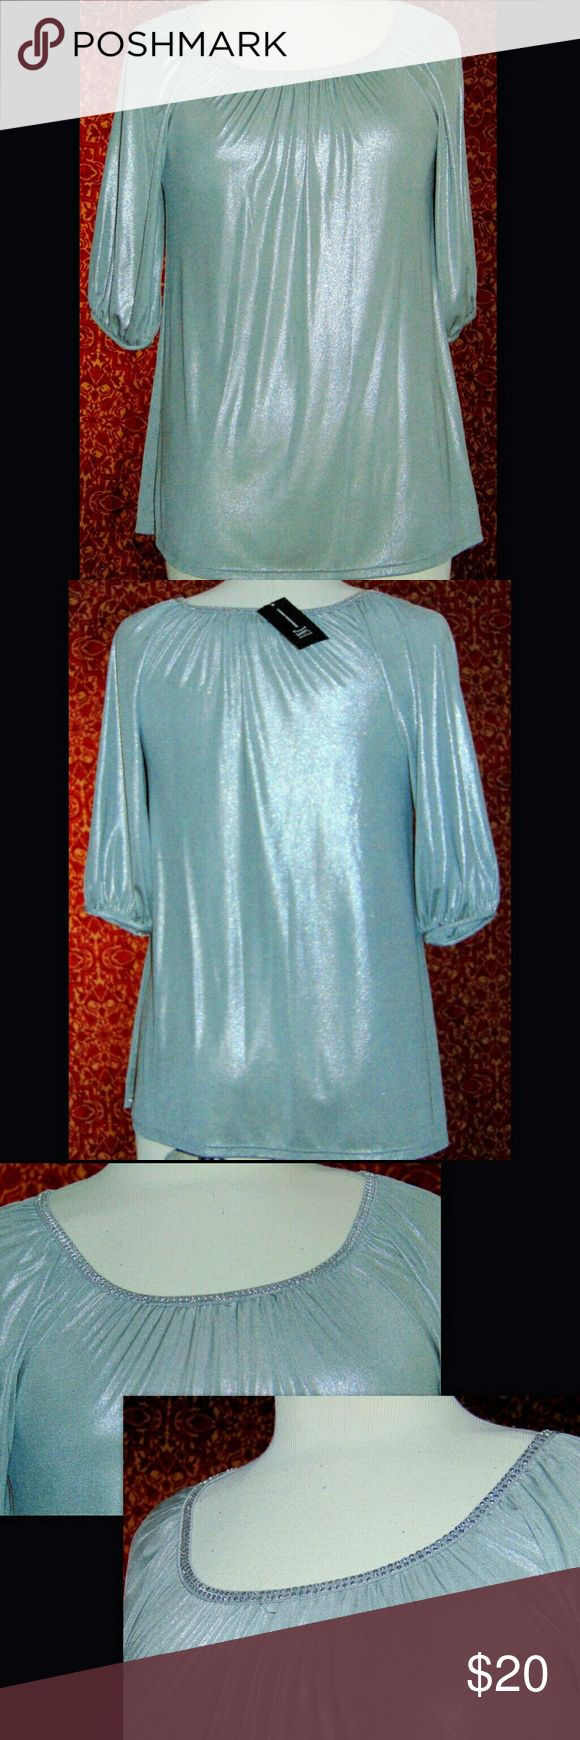 NWT INC INTERNATIONAL CONCEPTS silver blouse NWT: Slinky, stretch knit polyester with spandex blouse.  It has a metallic silver look.  Neckline has faux rhinestones.  sleeves has banded cuffs. INC International Concepts Tops Blouses